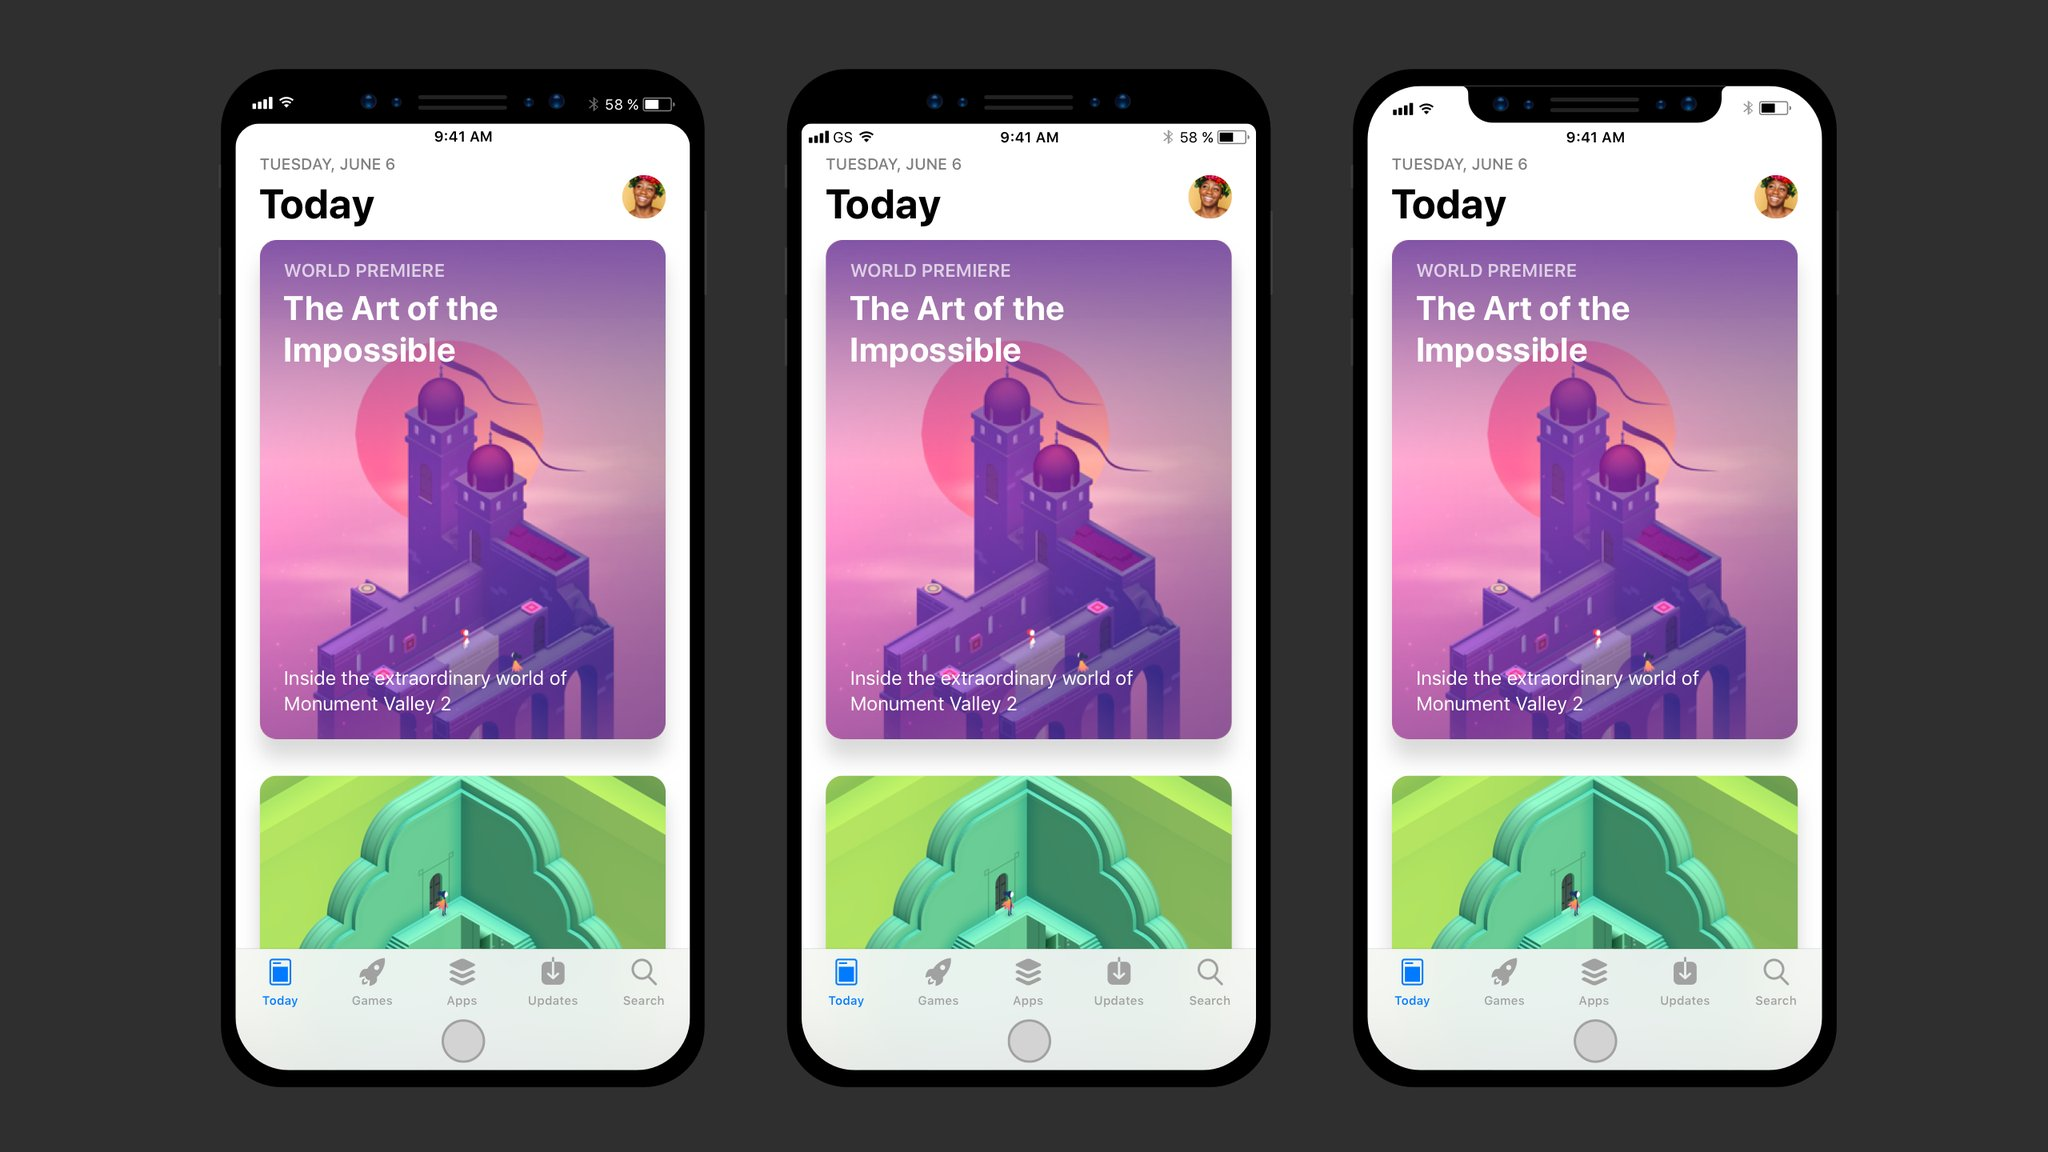 Iphone X Notch Wallpaper App Here S How Your Favorite Apps Might Embrace Iphone 8 S Notch